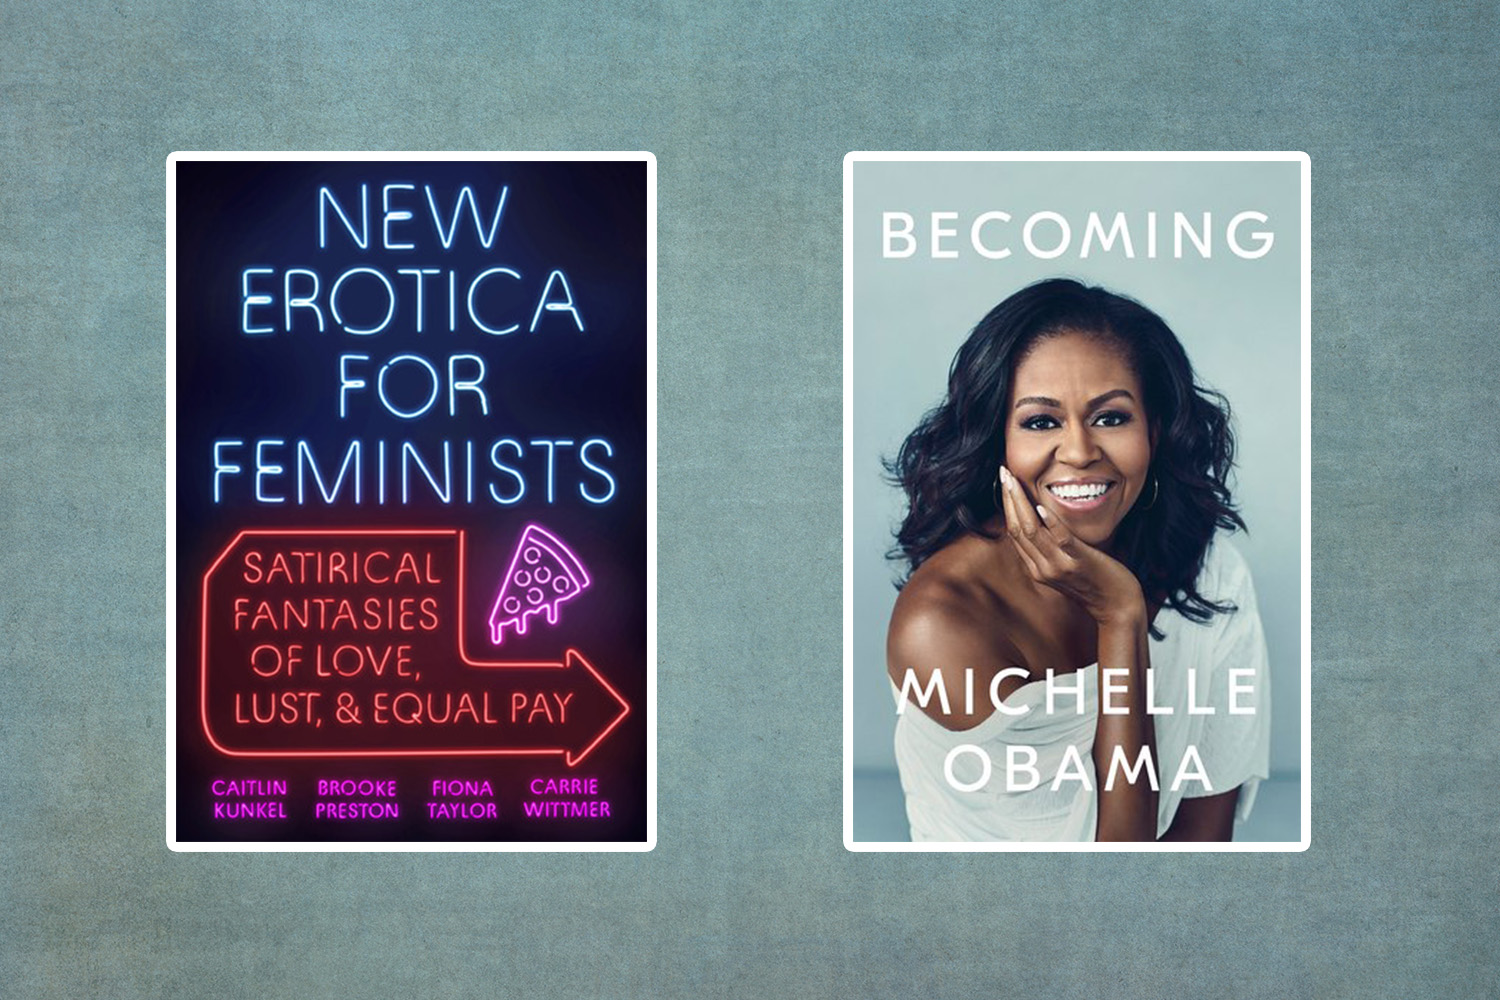 Books coming out this week: <em>New Erotica for Feminists</em>, <em>Becoming</em>, and more